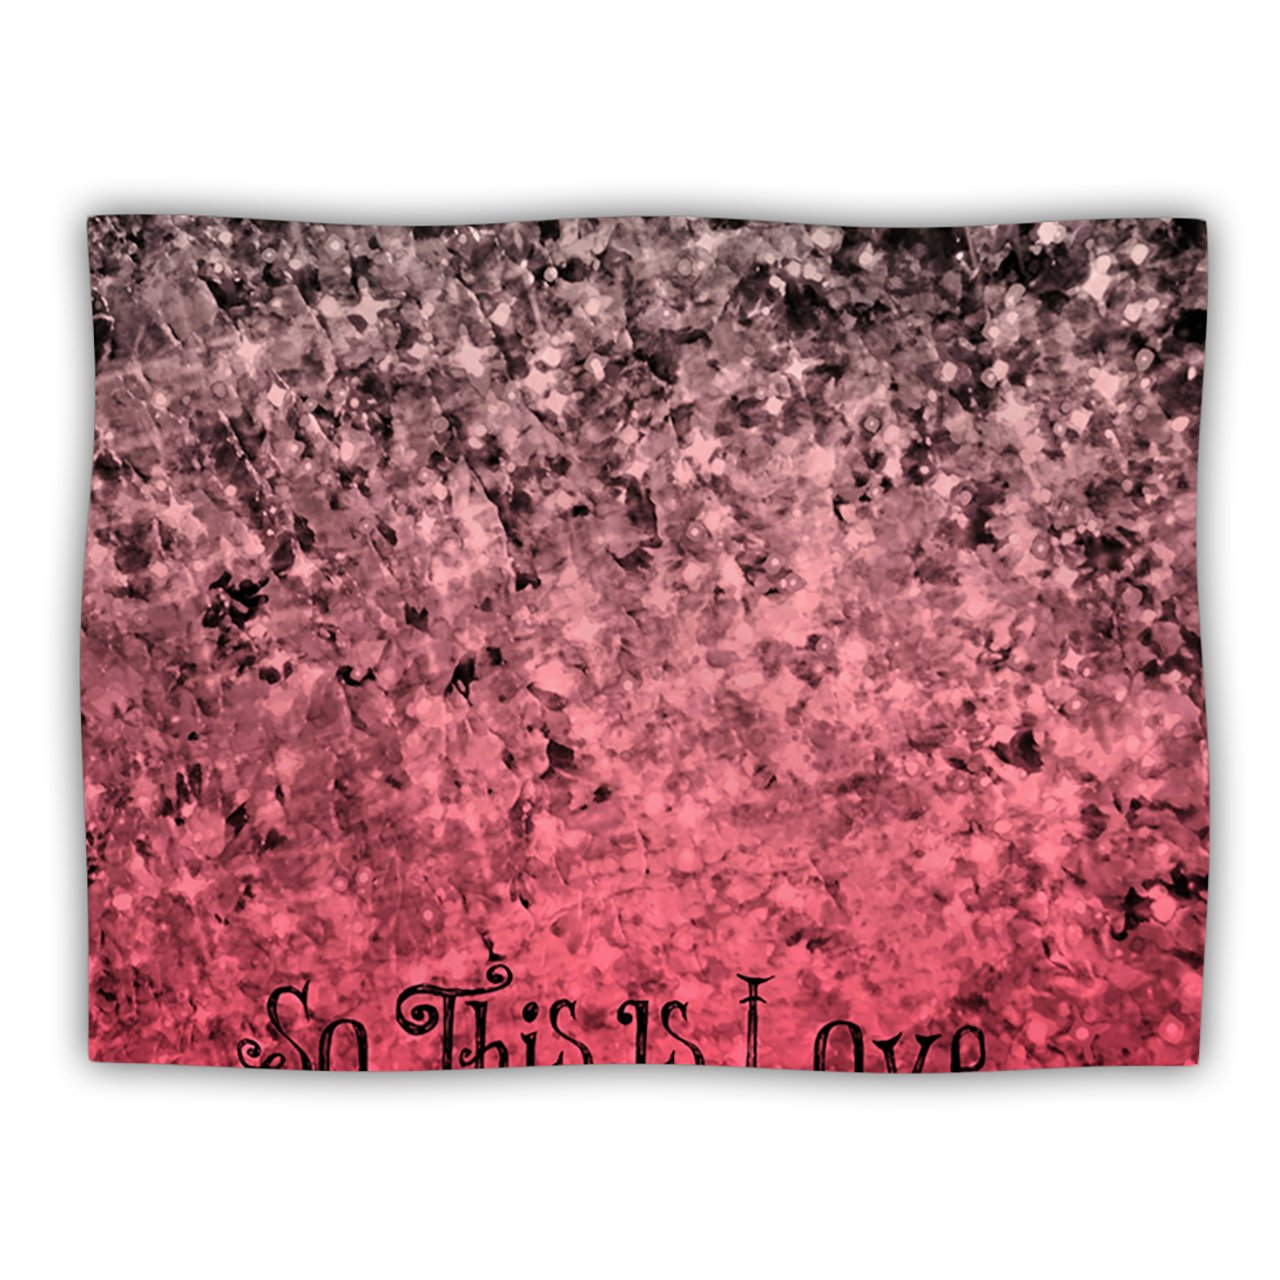 Kess InHouse Ebi Emporium 'So This is Love' Pink Glitter Dog Blanket, 40 by 30-Inch kess inhouse julie hamilton snowflake sky blue woven sham 40 by 20 inch